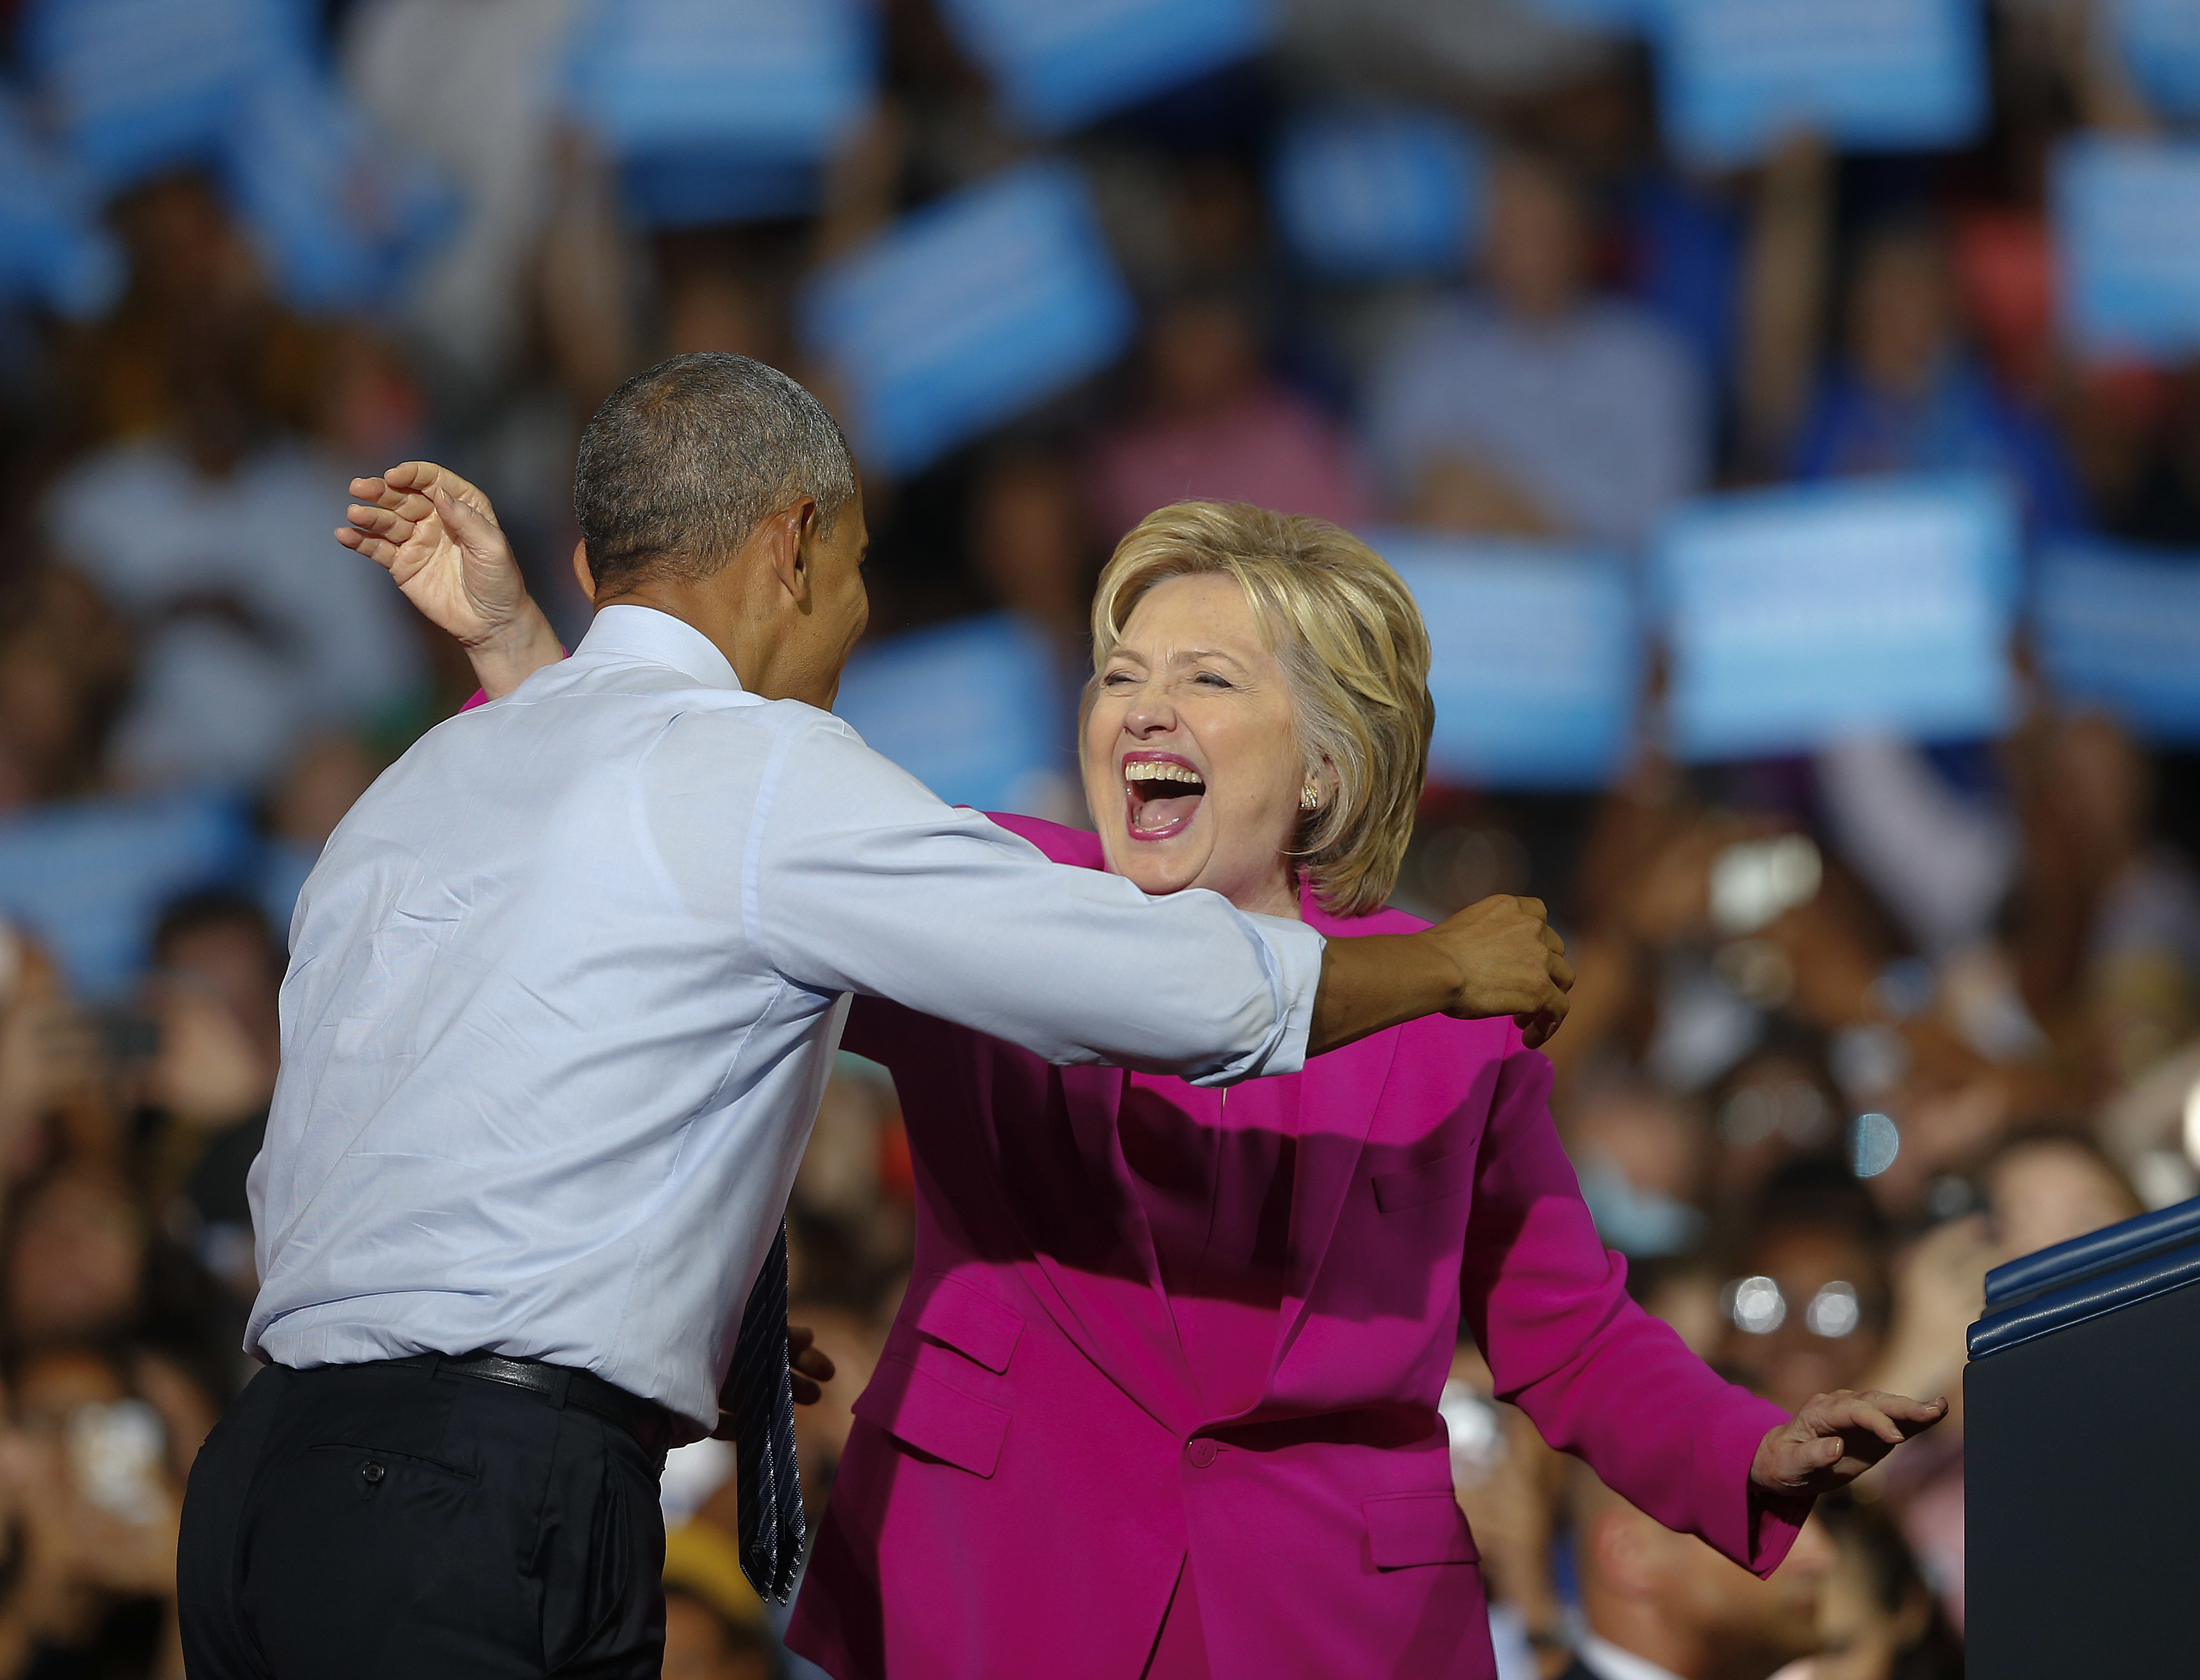 President Barack Obama and Democratic presidential candidate Hillary Clinton embrace during a campaign rally, July 5, 2016, in Charlotte, N.C..